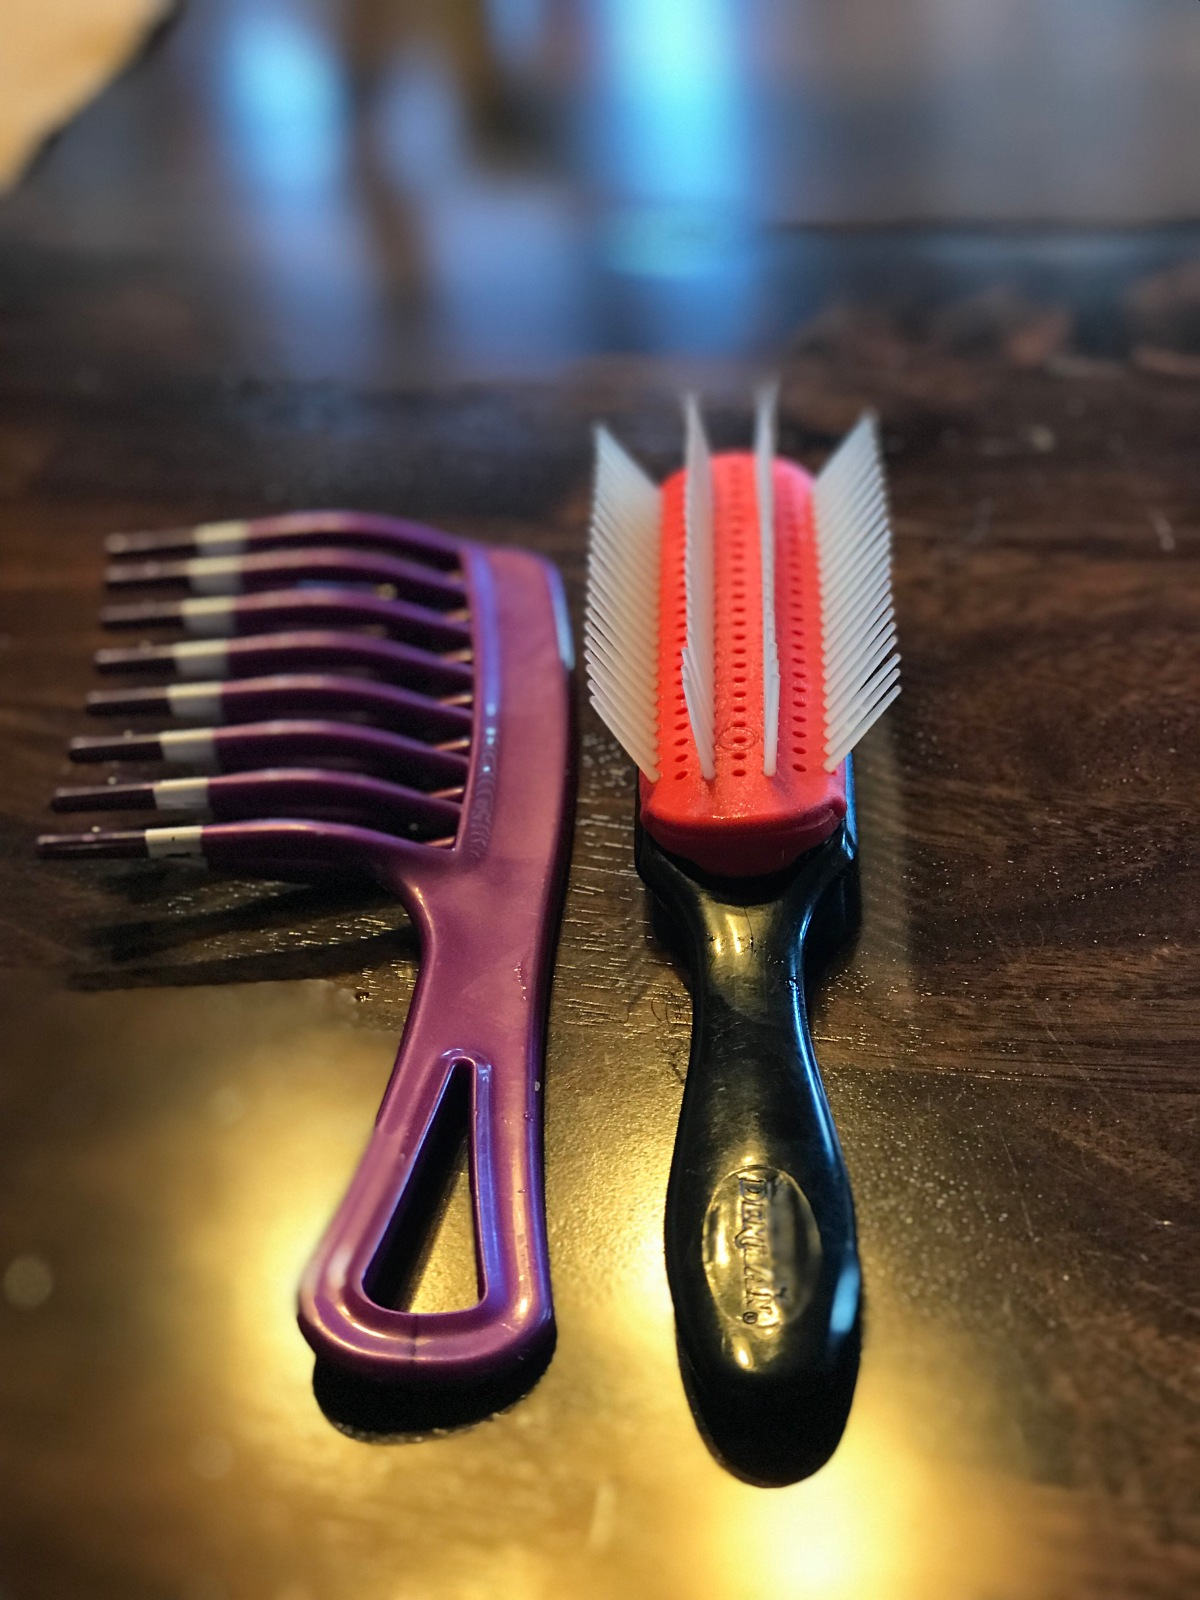 My Denman Brush and Wide-toothComb